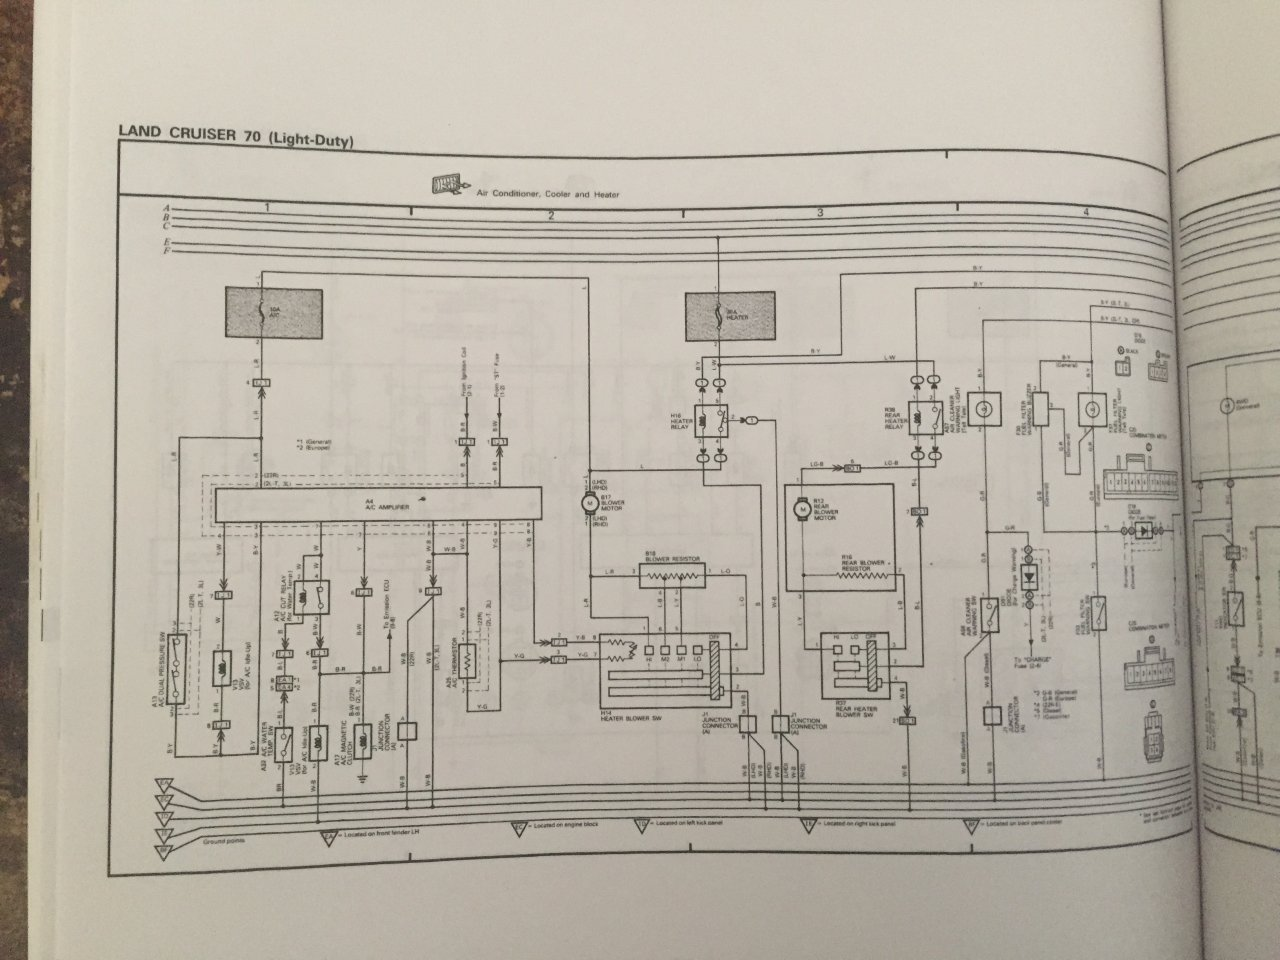 Cascade Truck Camper Wiring Diagram 1991 Library Way Switch Power To Light Galleryhipcom The Hippest Need Help Asap With Lj71 Ih8mud Forum Iphone5 007